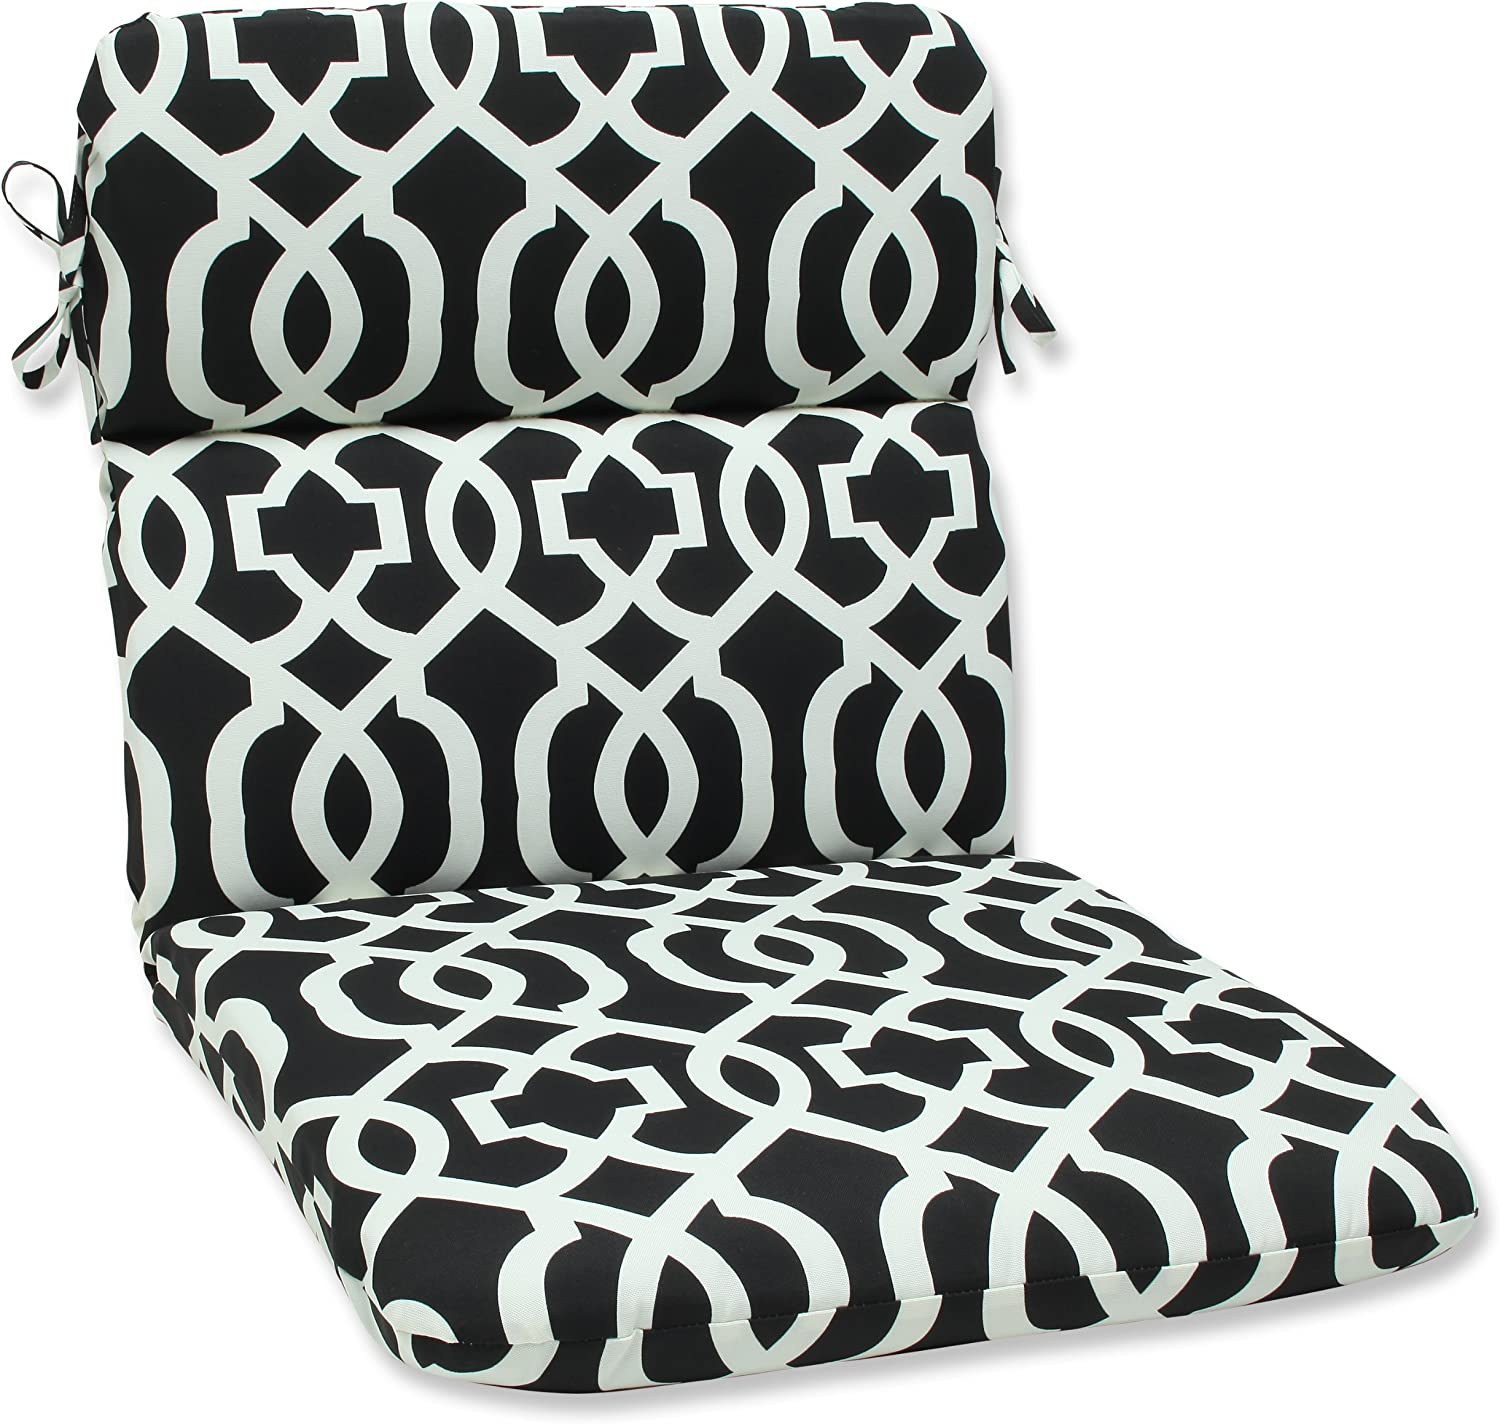 Pillow Perfect Outdoor New Geo Rounded Corners Chair Cushion, Black White